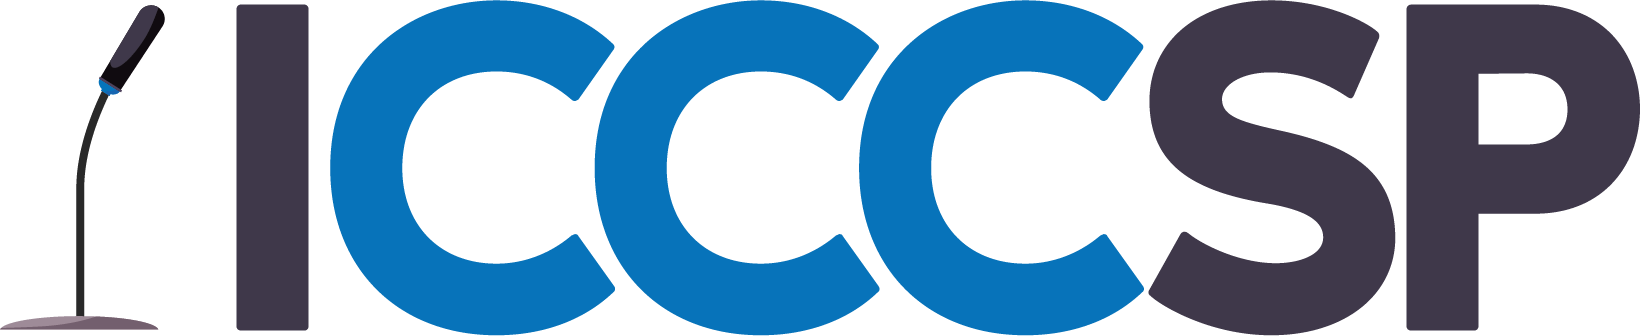 4th IEEE International Conference on Computer, Communication and Signal Processing ICCCSP 2020